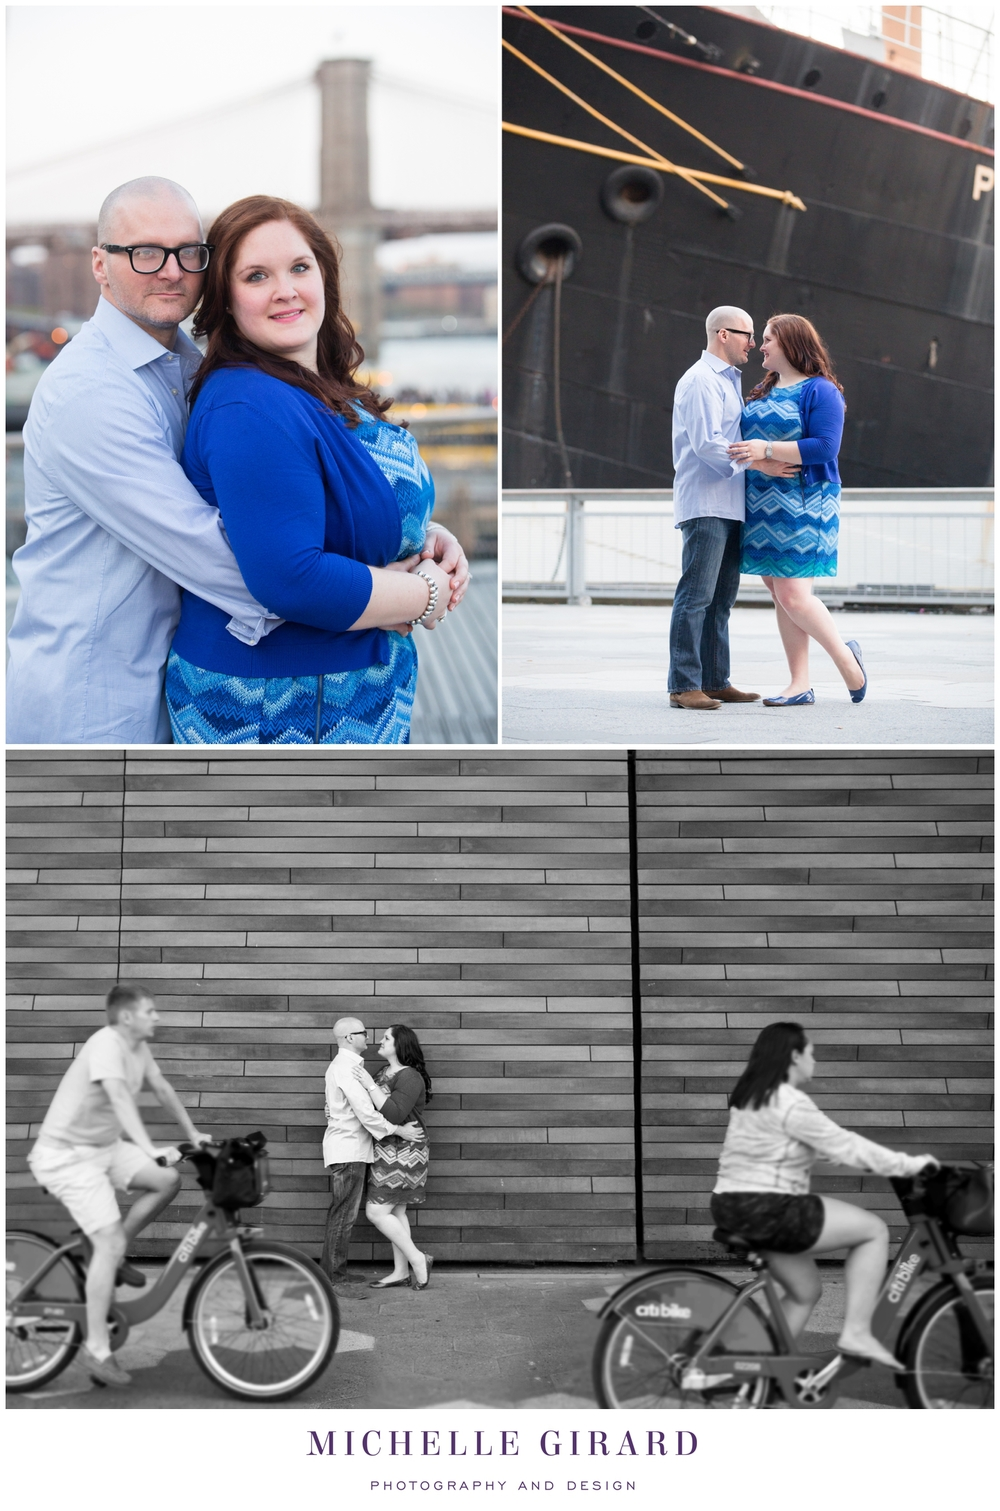 NewYorkCityEngagementSession_FinancialDistrict_MichelleGirardPhotography11.jpg